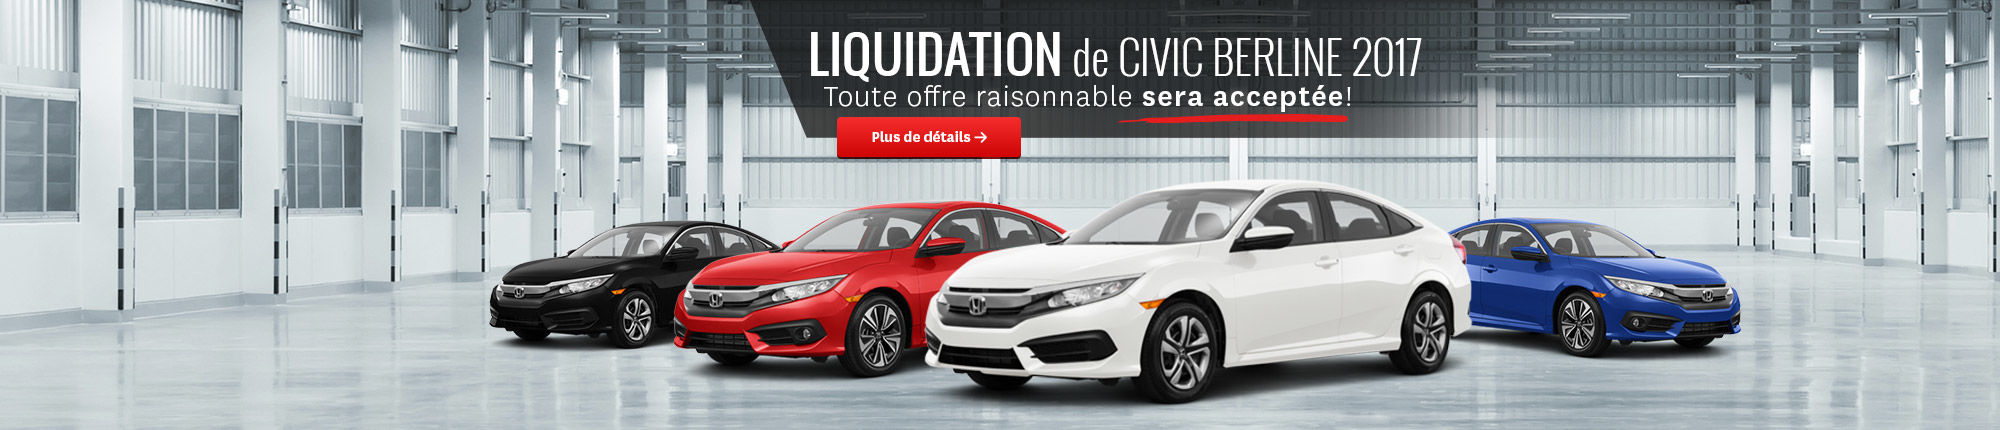 Liquidation Civic Berline 2017